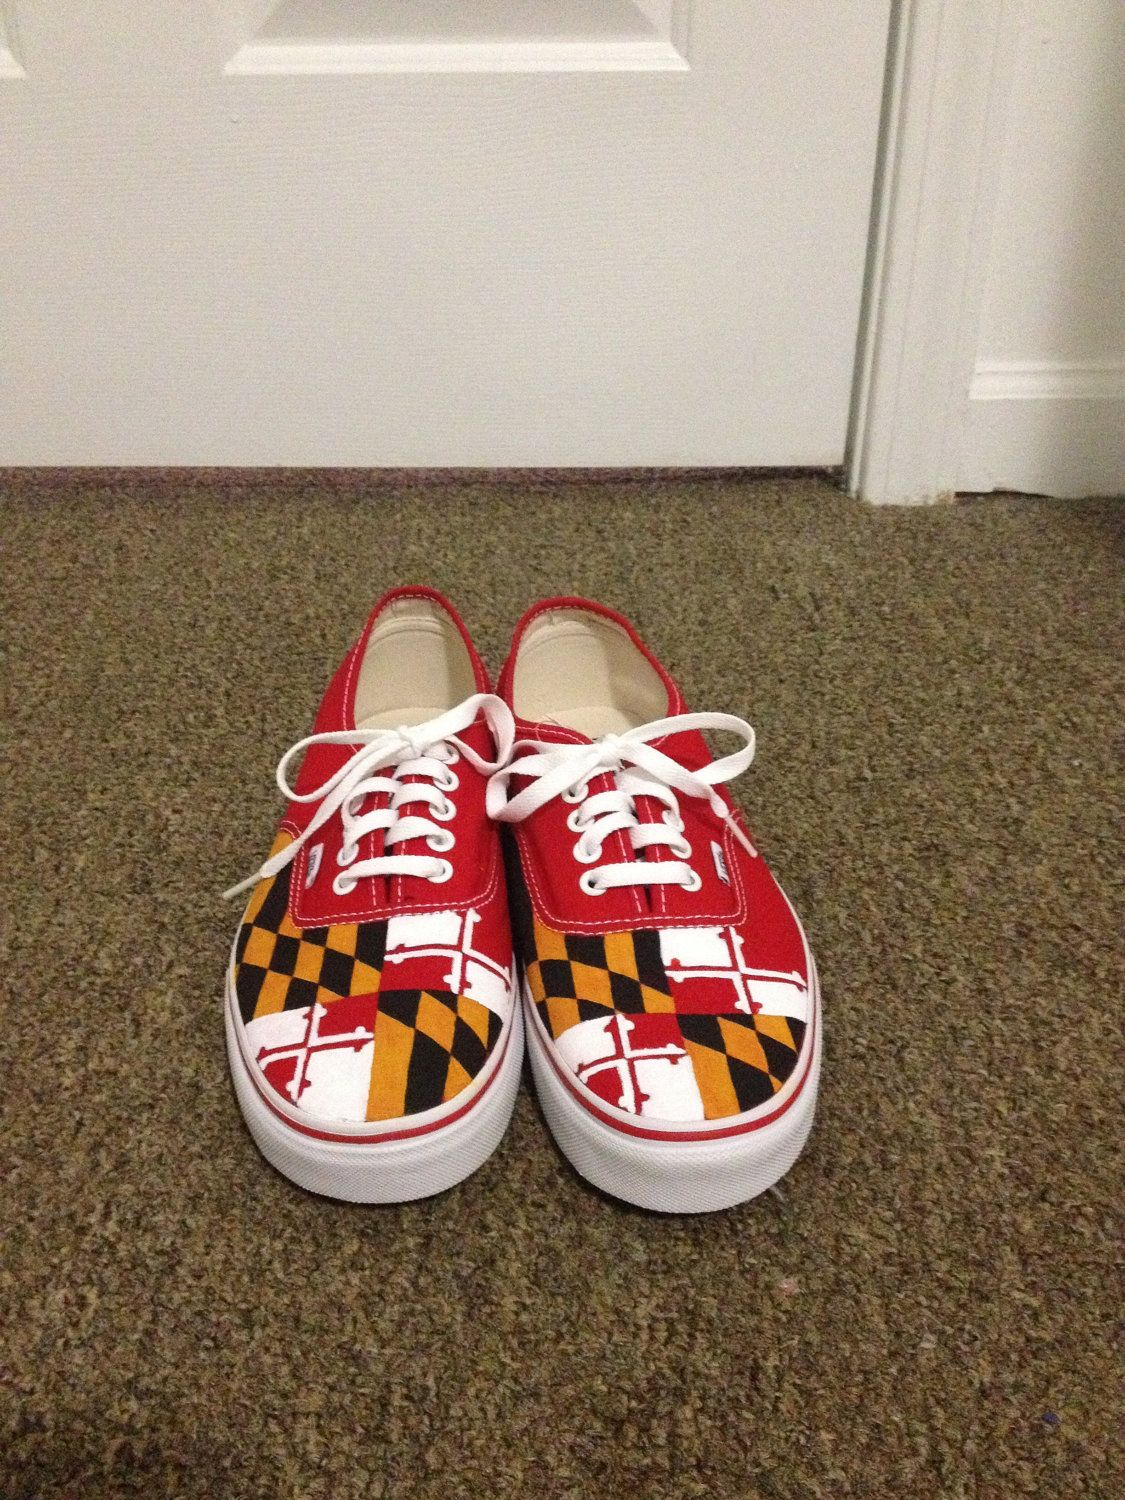 2b9964fc5d Hand Painted Maryland Flag Vans...I want these so bad  ProudMarylander  lol